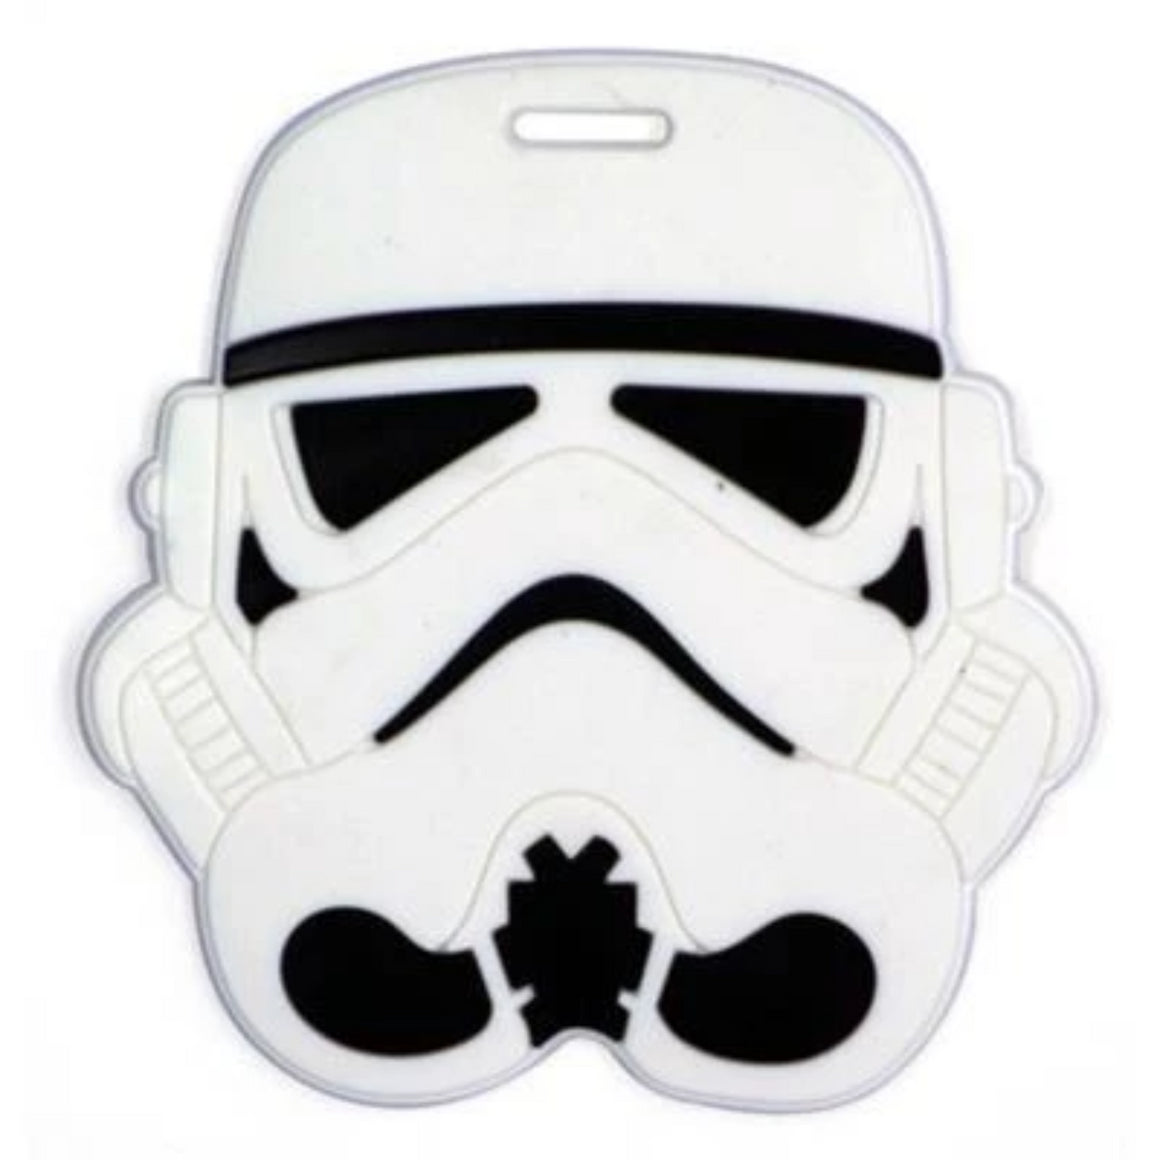 1PC Luggage Tags Travel Bags Accessories Classic Lovely Cartoon Film Stormtrooper & Black Knight Suitcase PVC Name